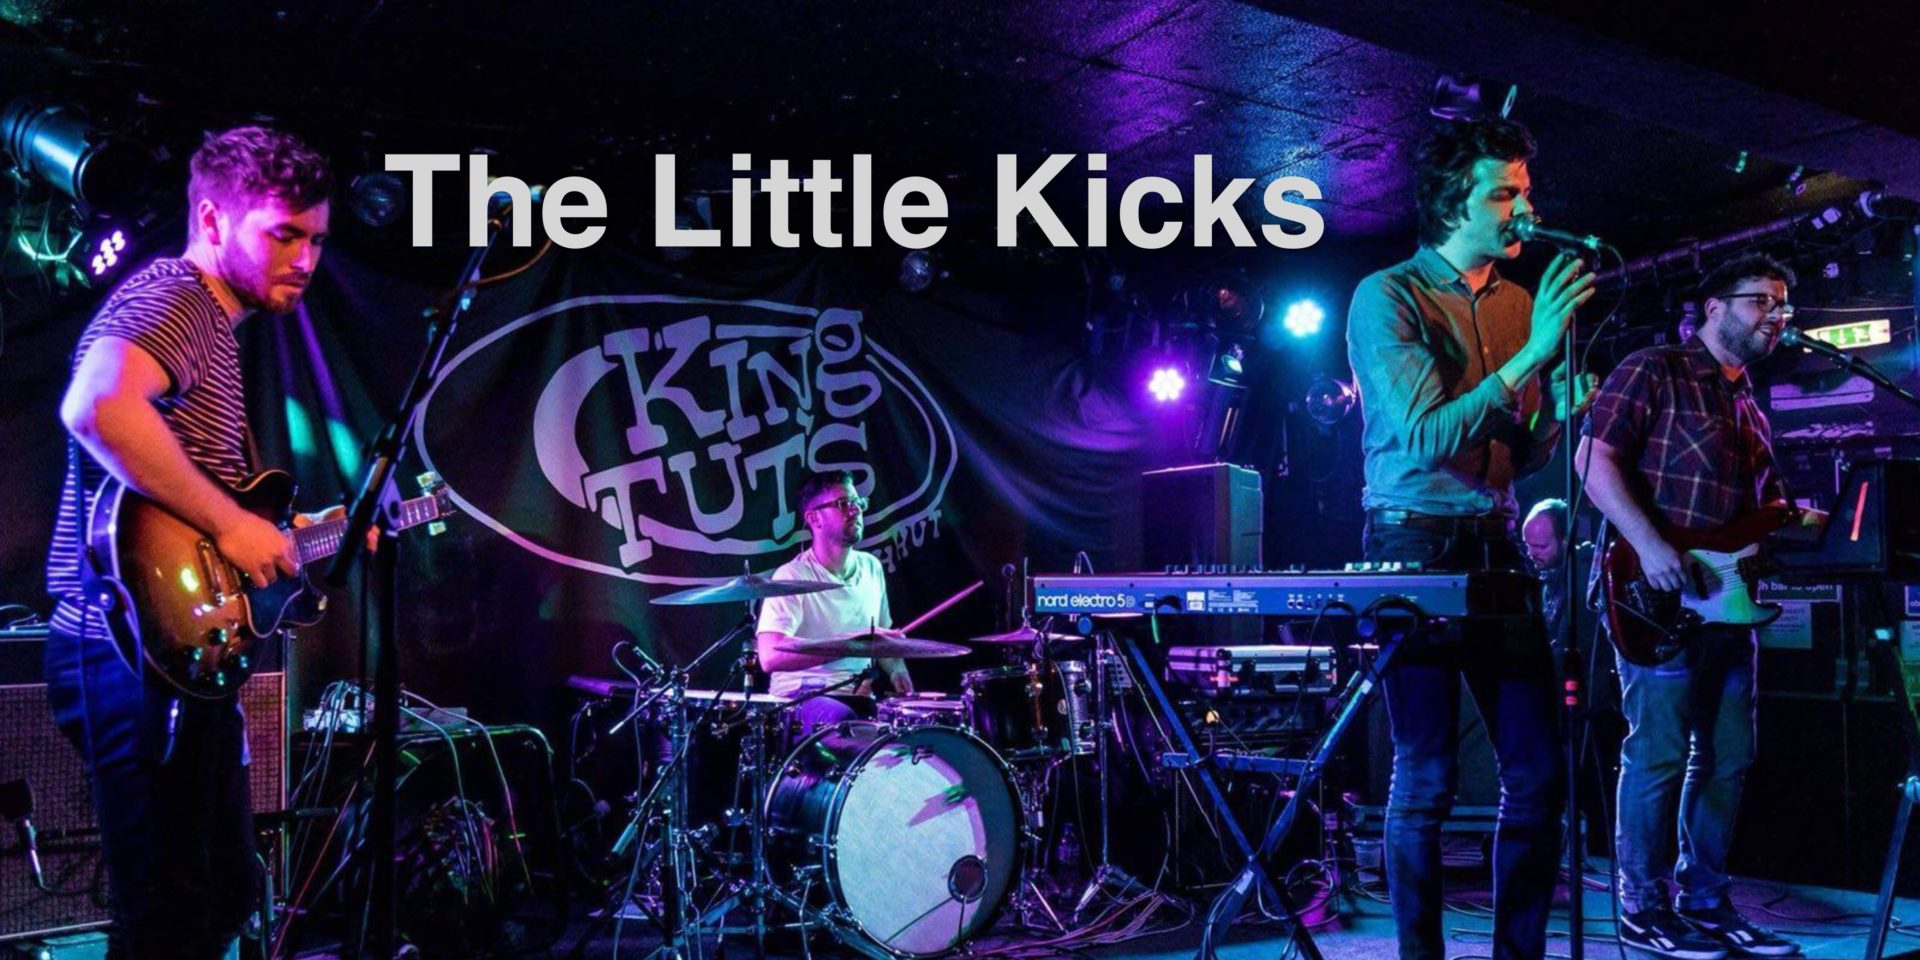 The Little Kicks